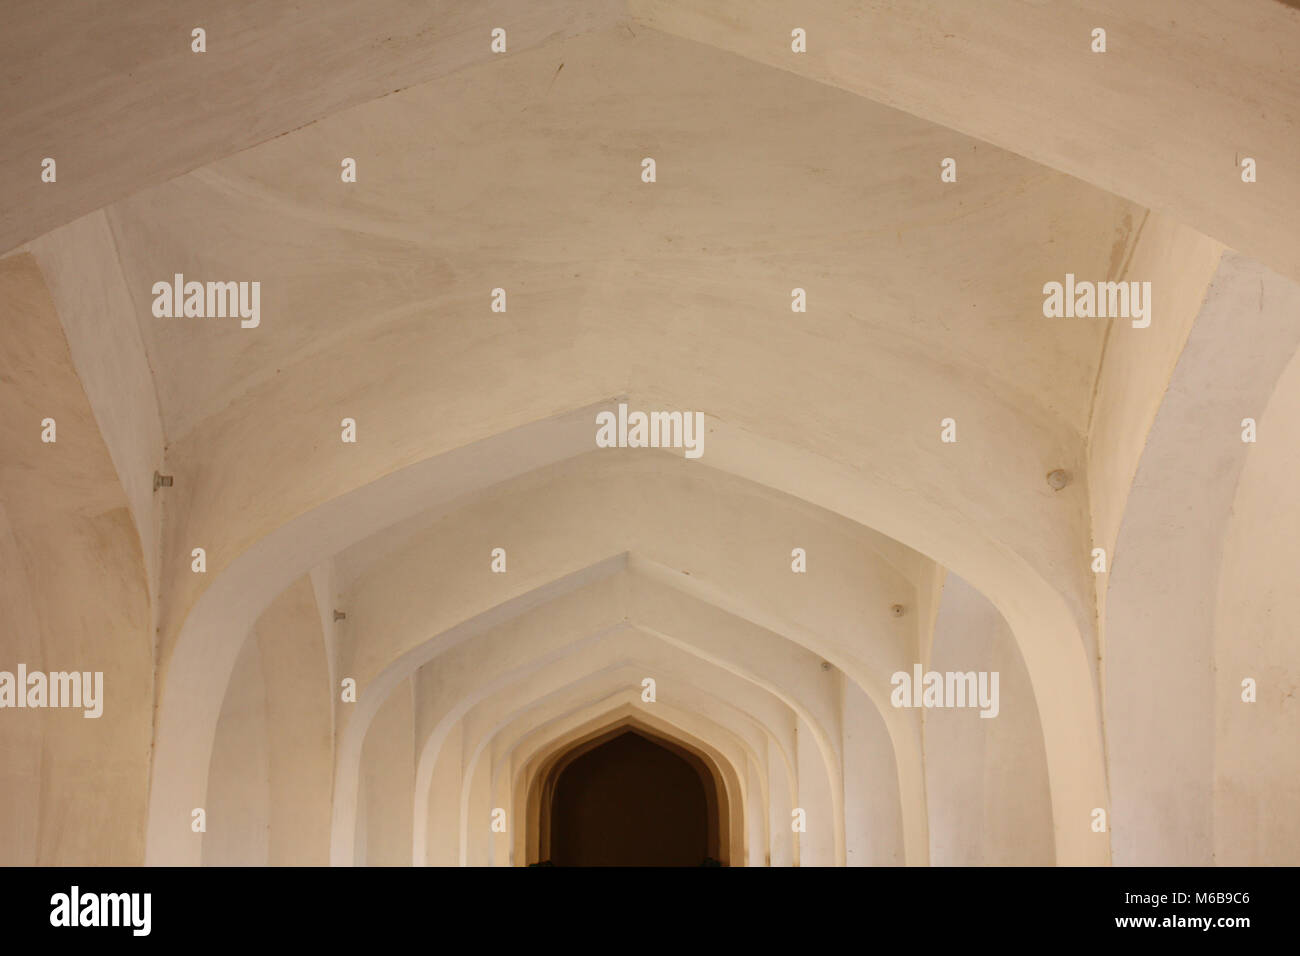 Geometric hallway in natural colors and central perspective. Takes in Rajastan, India. - Stock Image